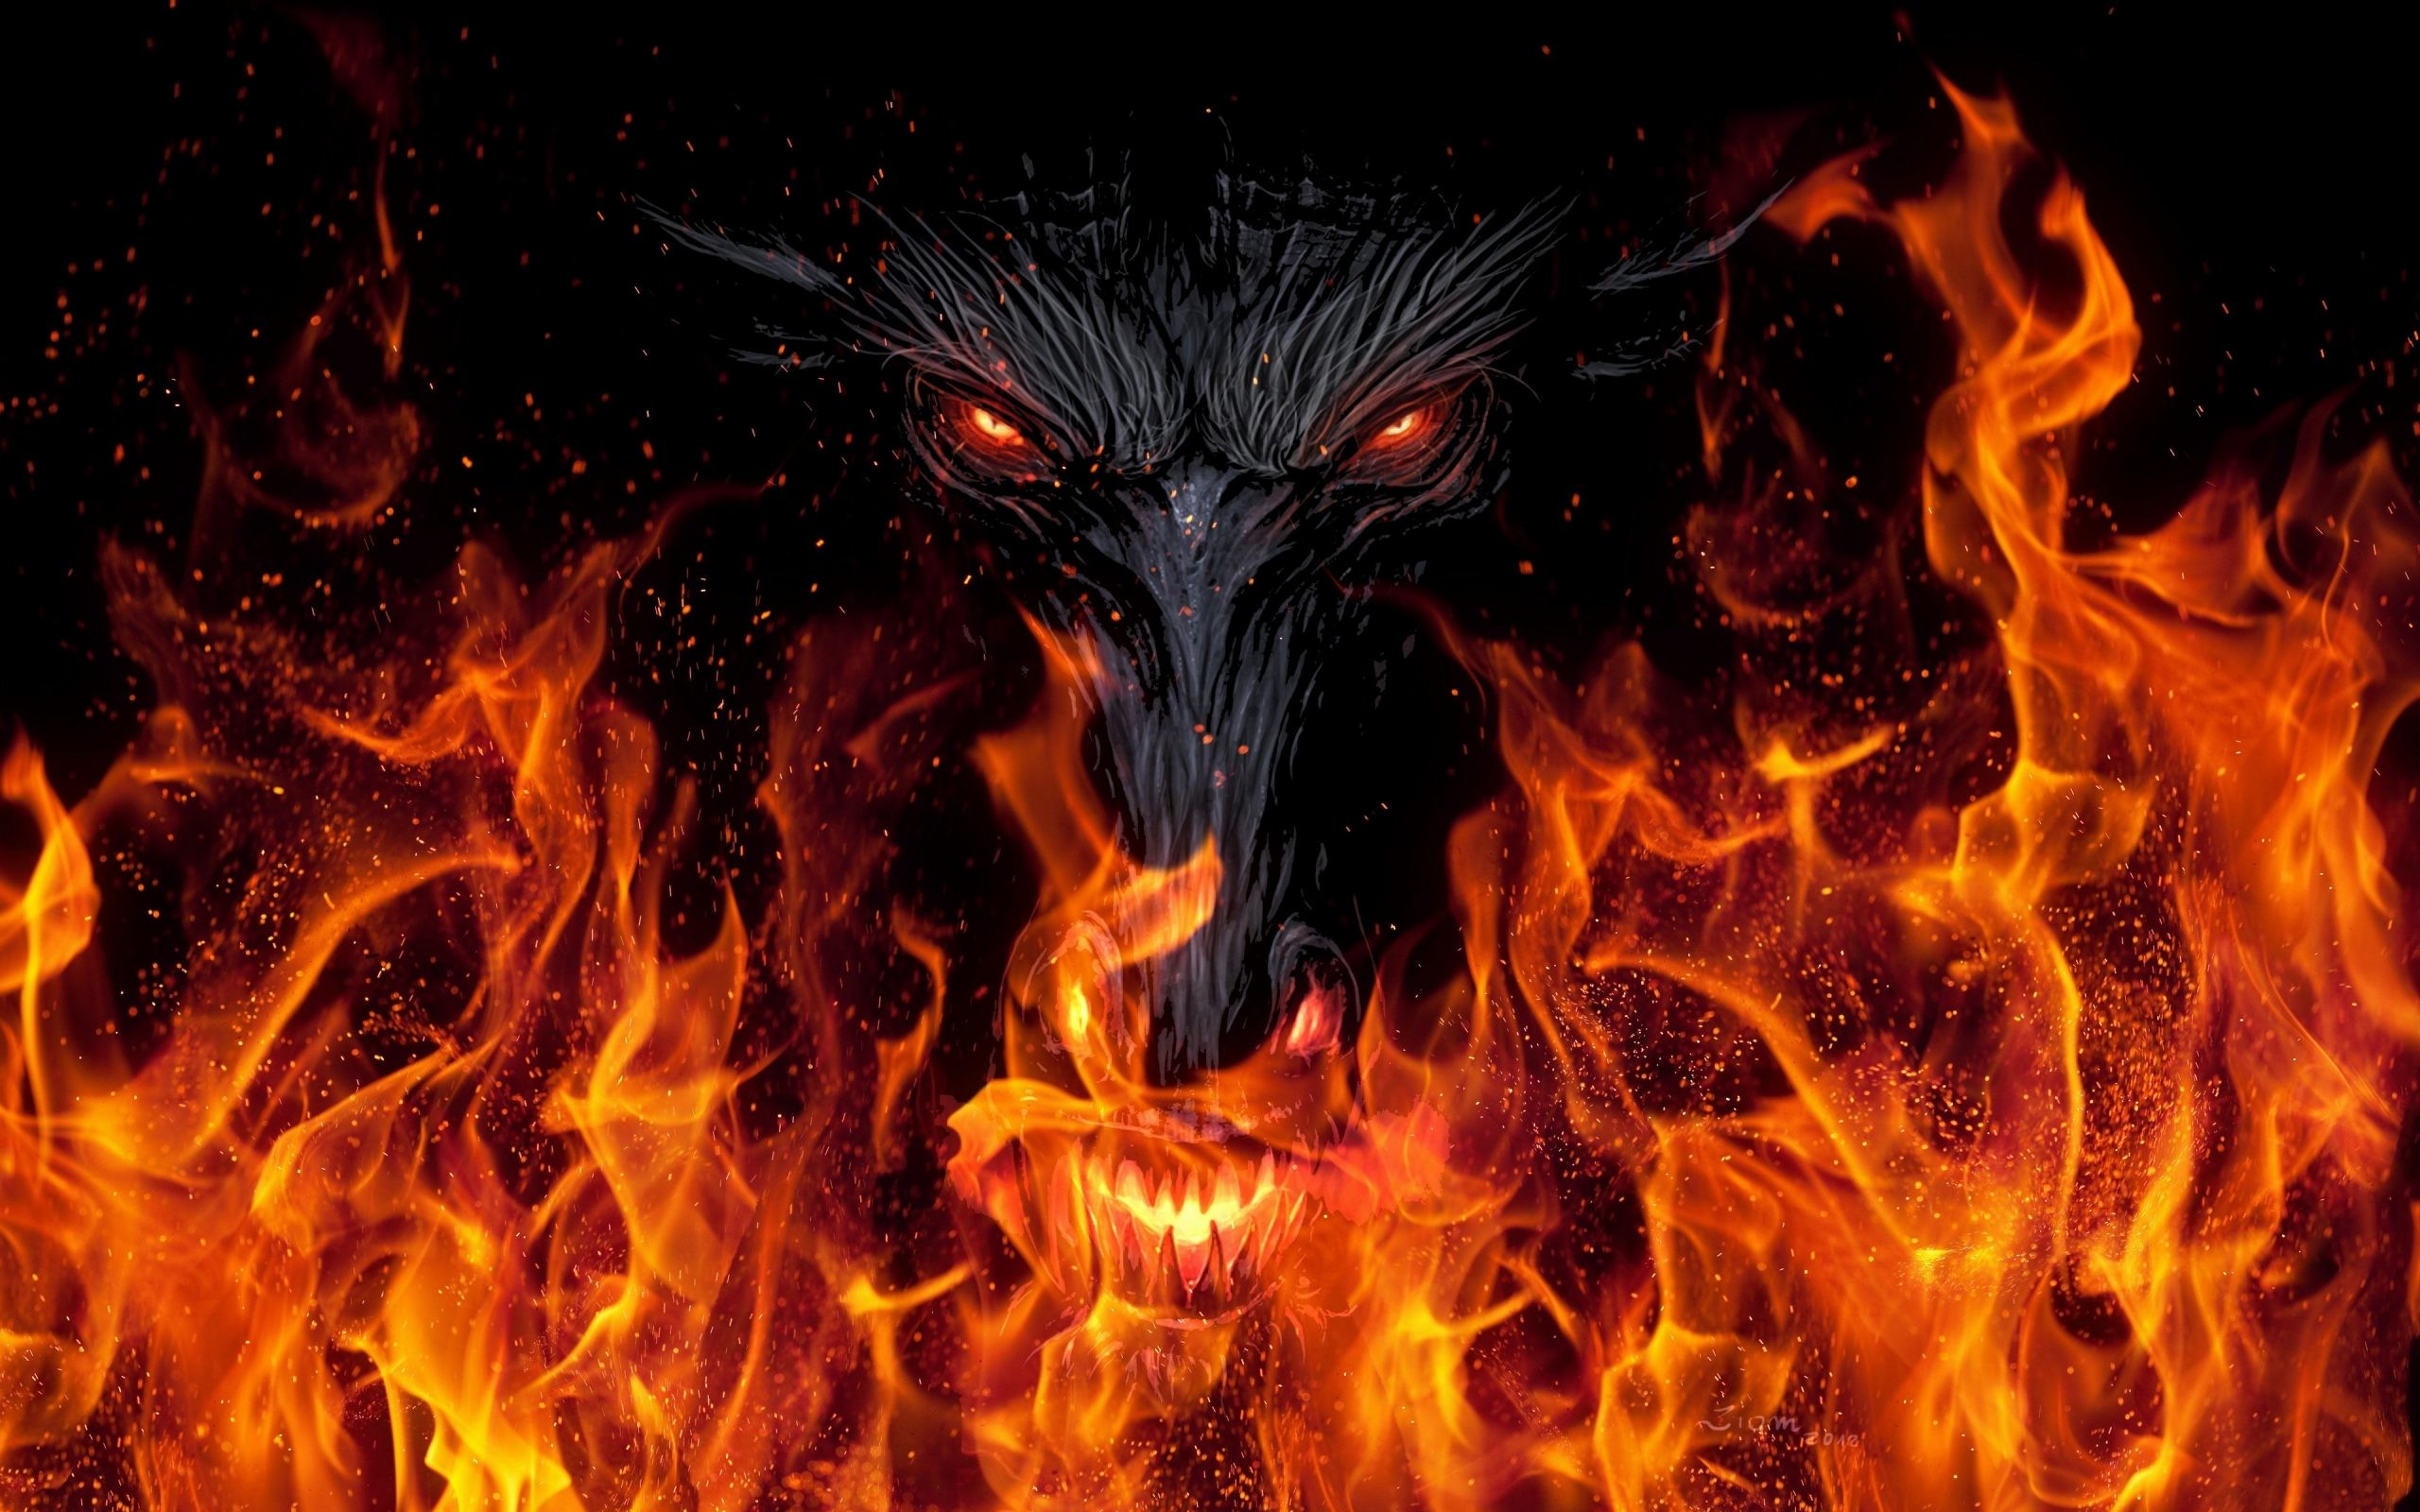 Download Original Wallpaper Category Creative Source Red Dragon HD 65 Images